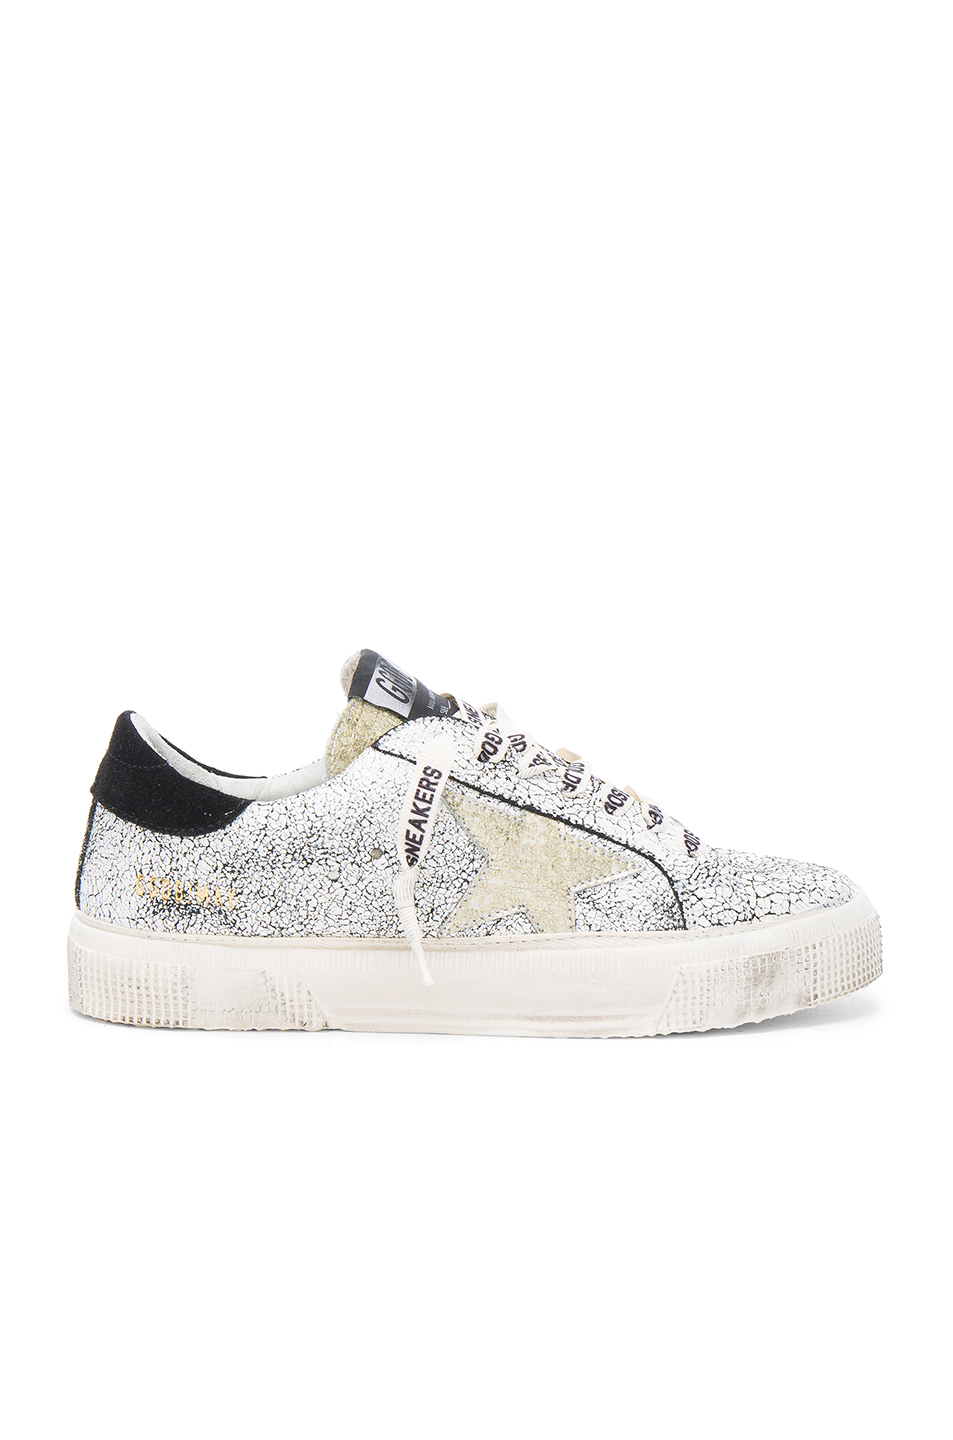 GOLDEN GOOSE May Star Low-Top Sneaker, White Crackled/Gold at FORWARD